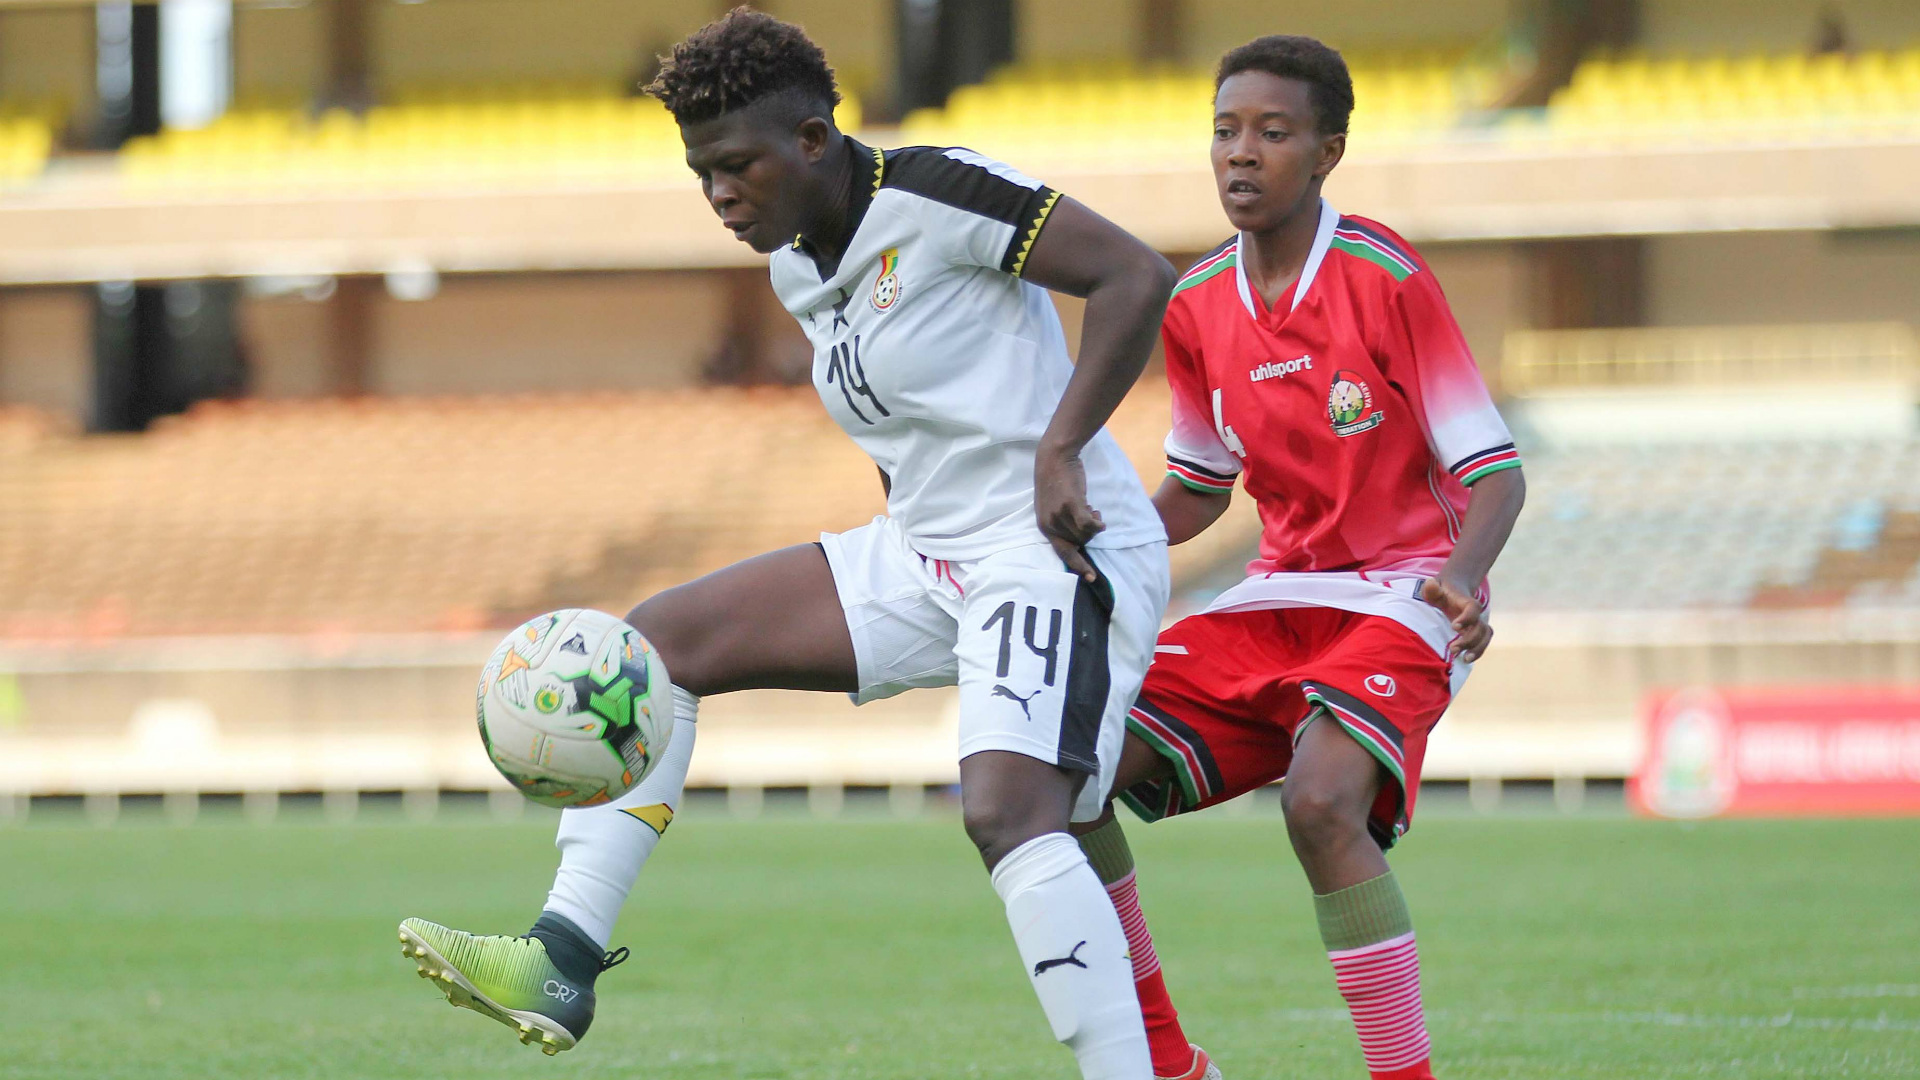 Olympic Games: Harambee Starlets face Ethiopia in friendly ahead of Malawi showdown